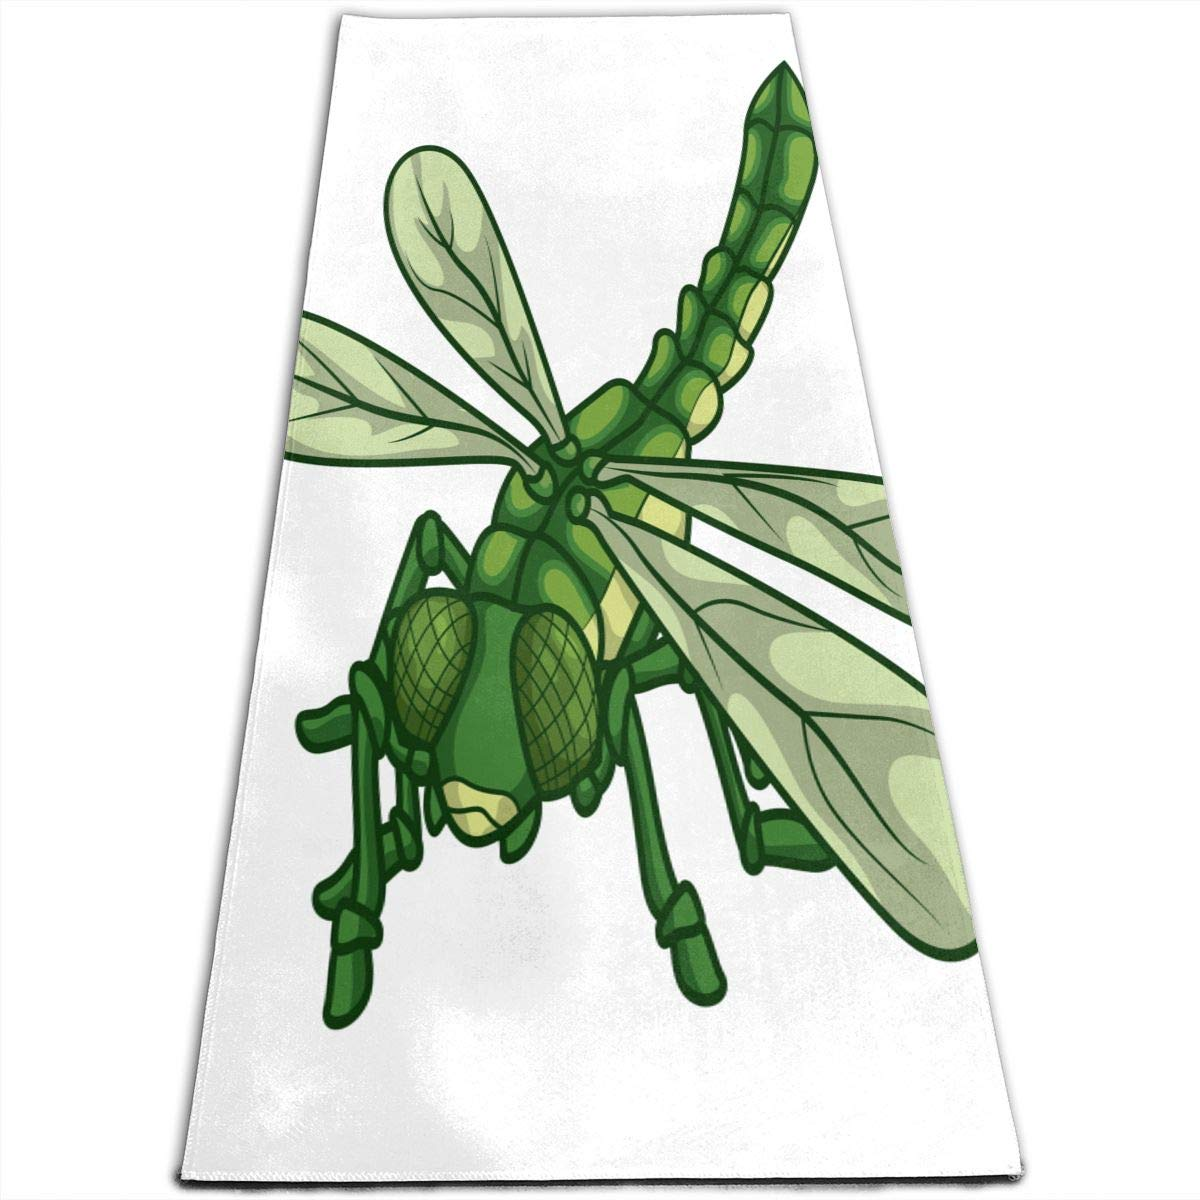 Amazon.com: Yoga Mat Dragonfly Special 1/4-Inch Thick Sports ...